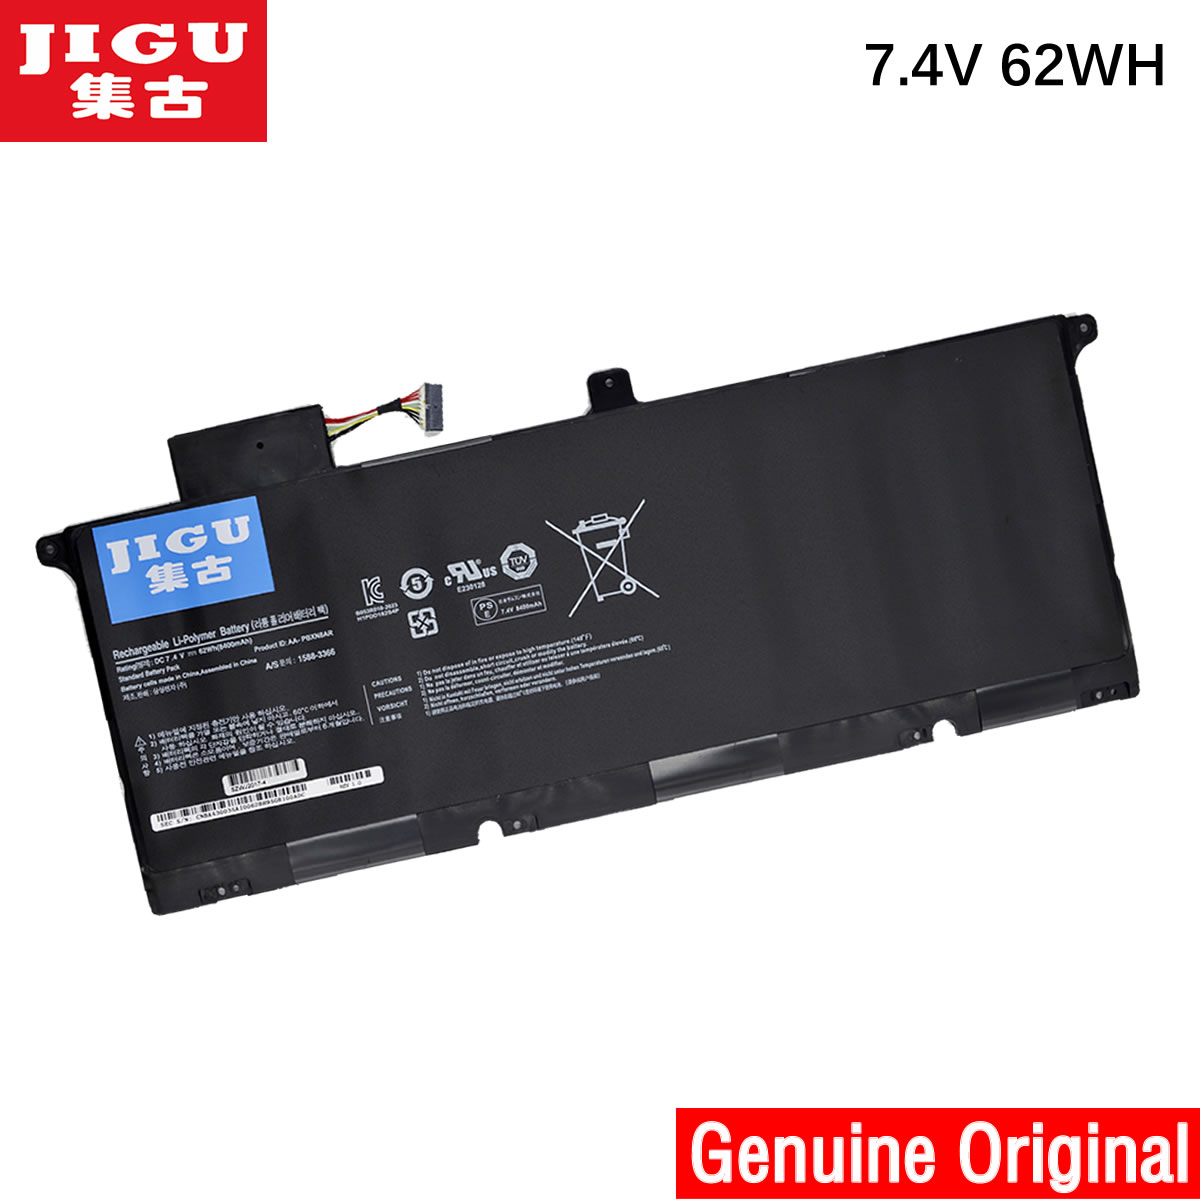 JIGU AA-PBXN8AR Replacement Laptop Battery For Samsung 900X4 900X46 900X4B-A01DE 900X4B-A01FR 900X4B-A03 900X4C-A01 NP900X4 laptop keyboard for samsung 900x4b 900x4c 900x4d uk united kingdom ba5903865a hmb8811gsb with backlit and without frame